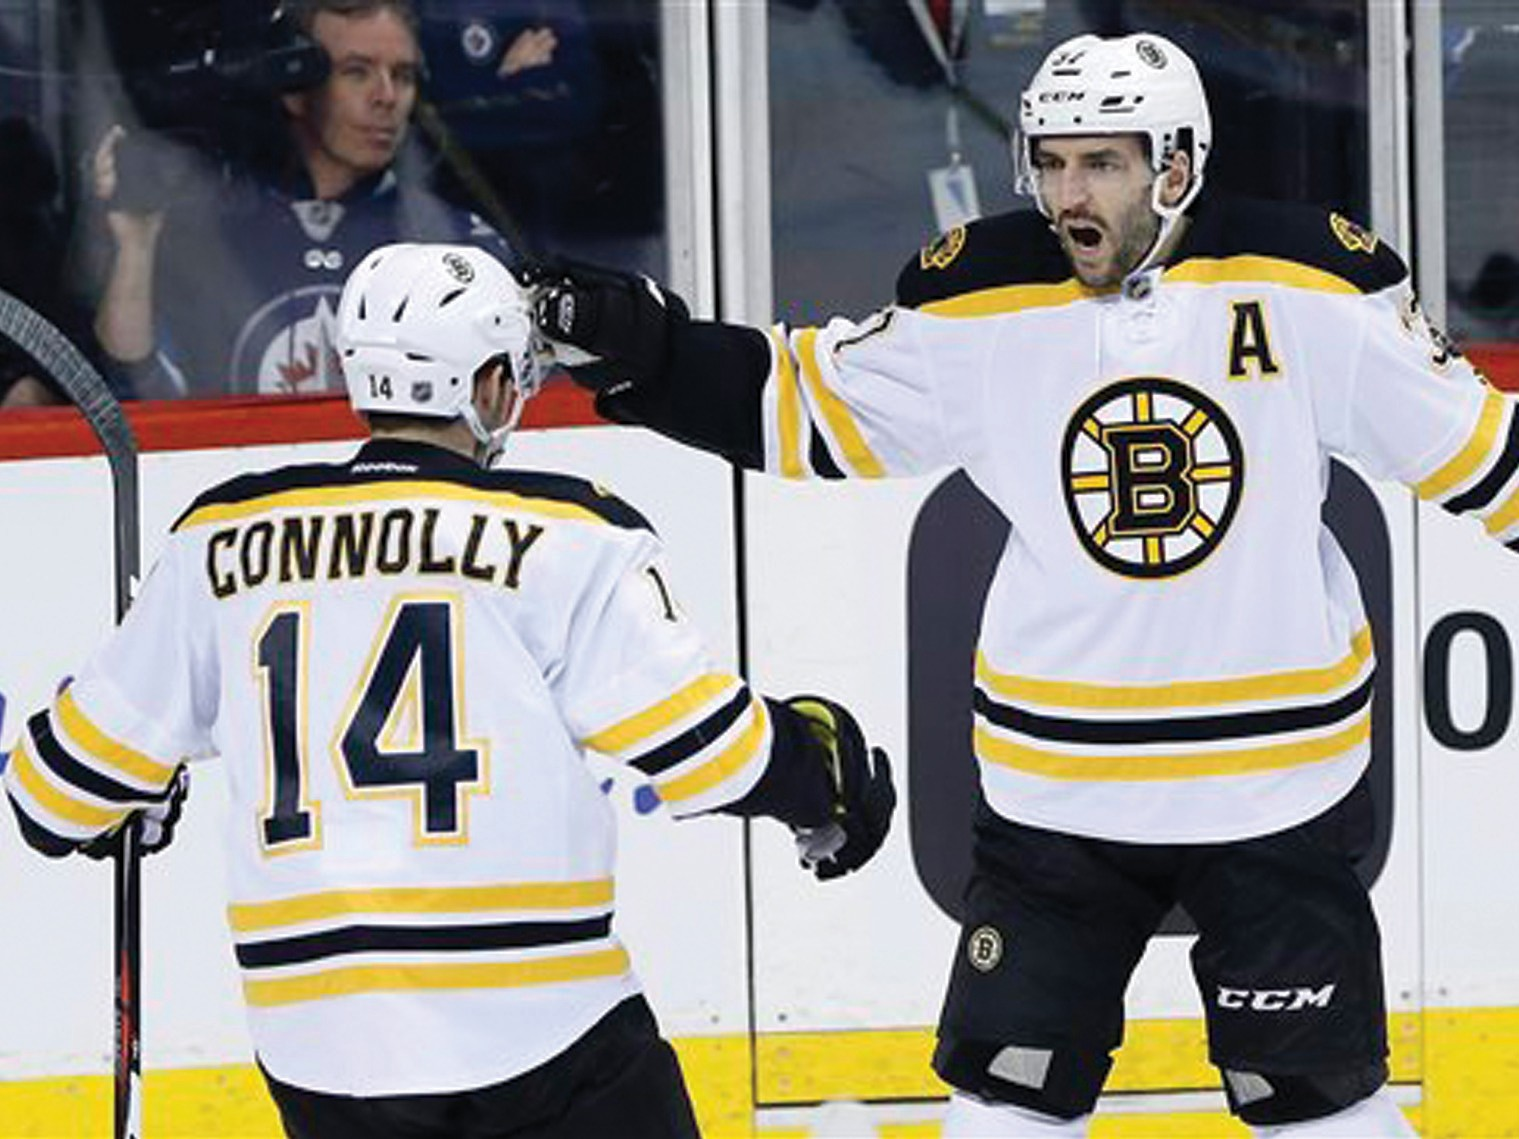 Boston Bruins' Brett Connolly (14) and Patrice Bergeron (37) celebrate Bergeron's goal against the Winnipeg Jets during the first period Thursday in Winnipeg, Manitoba.